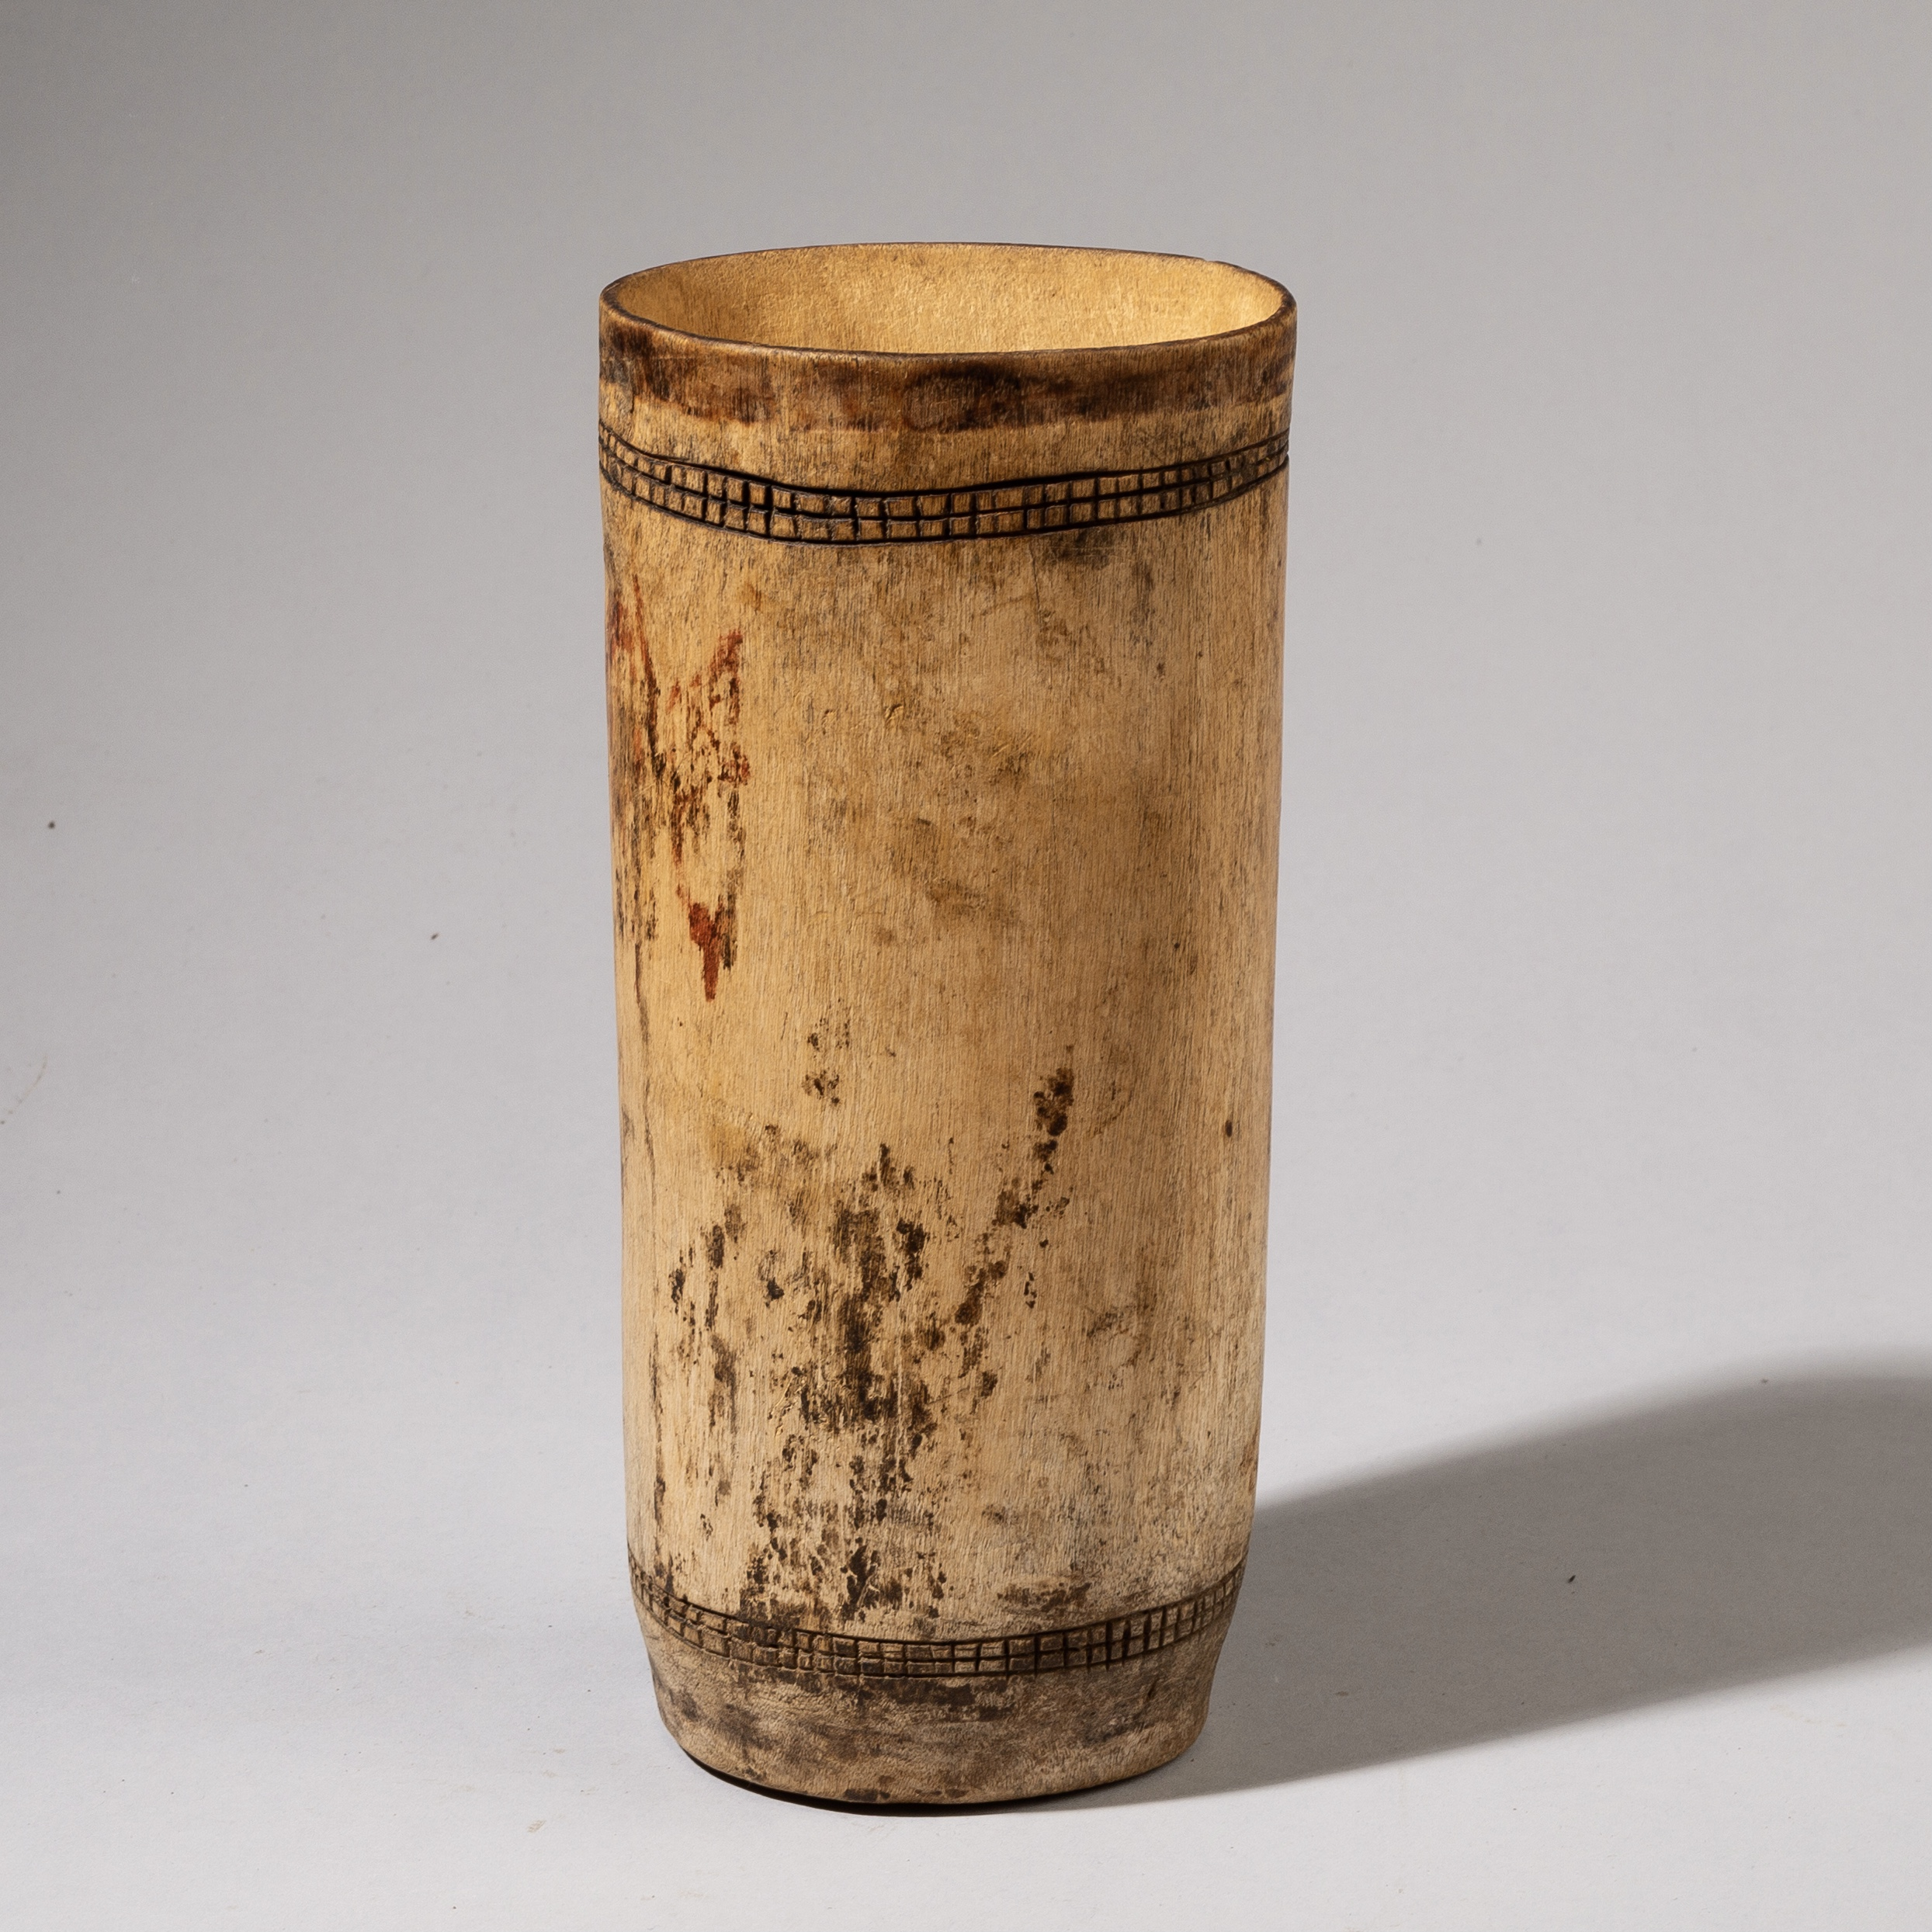 Sold-A STYLISH WOOD TURKANA TRIBE MILK CONTAINER FROM KENYA (No 3542 )